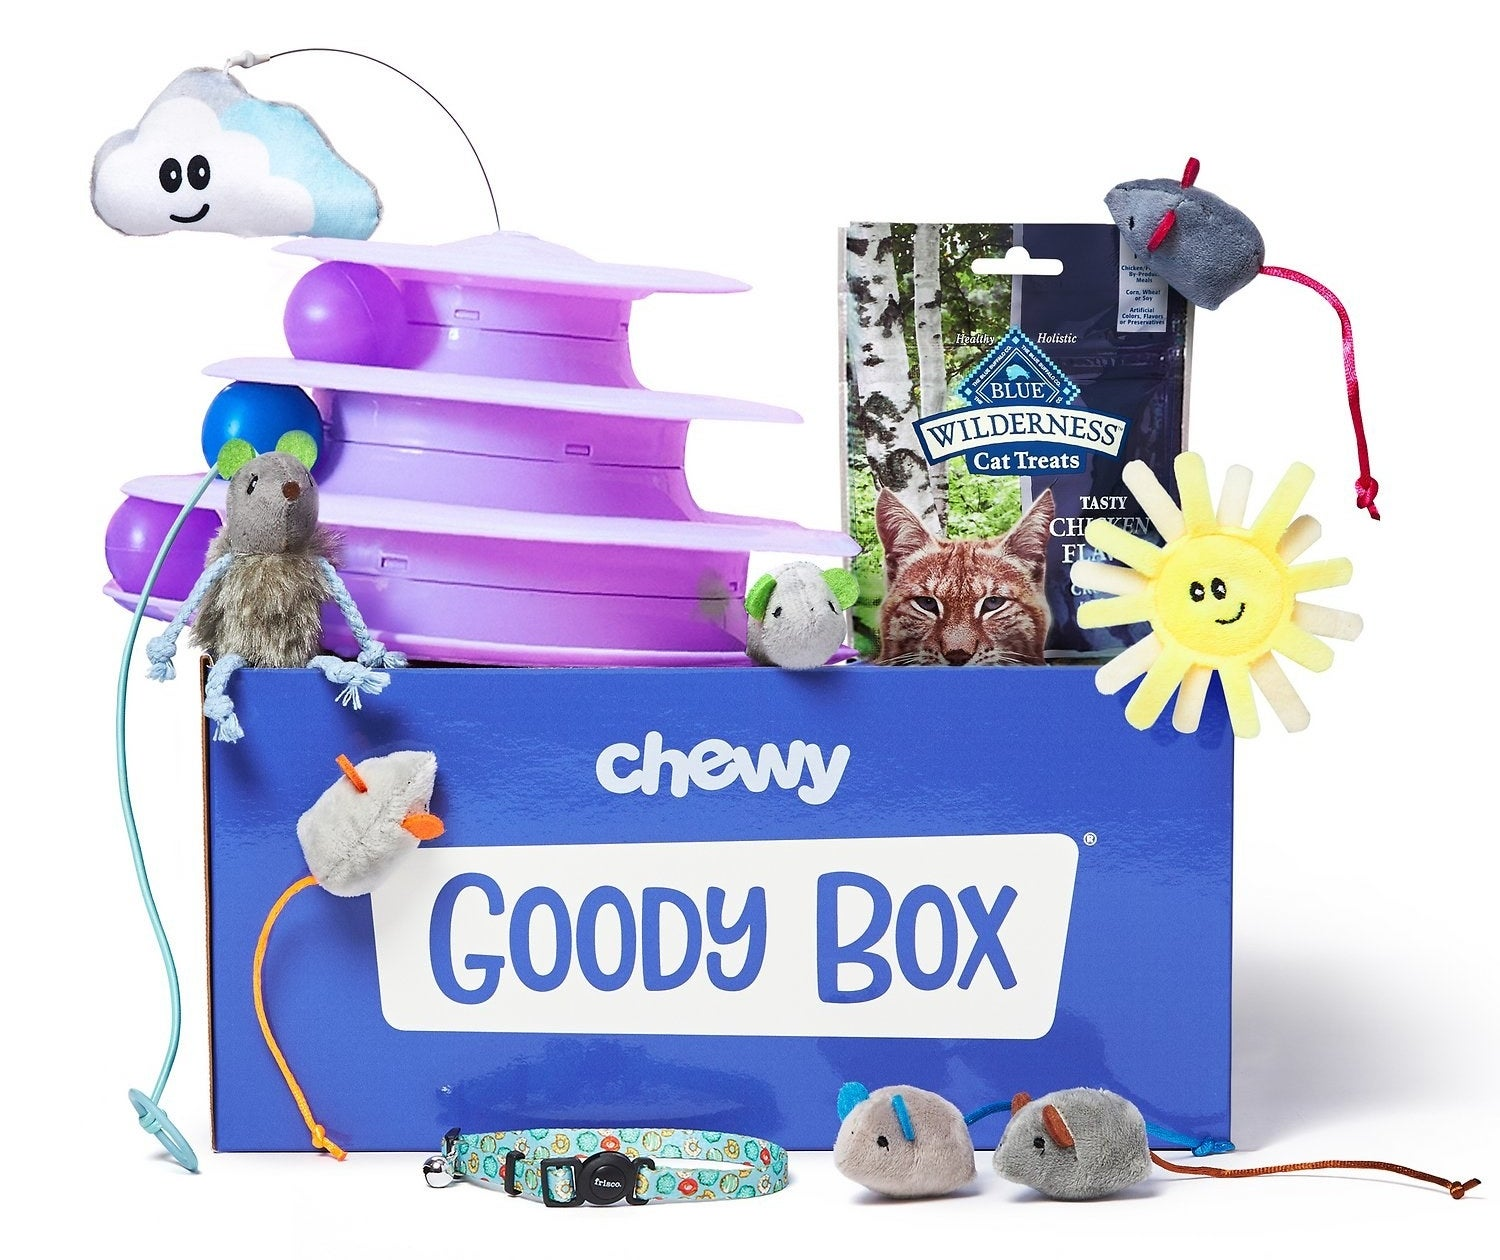 A Chewy Goody Box with toy mice, treats, a collar, and various toys